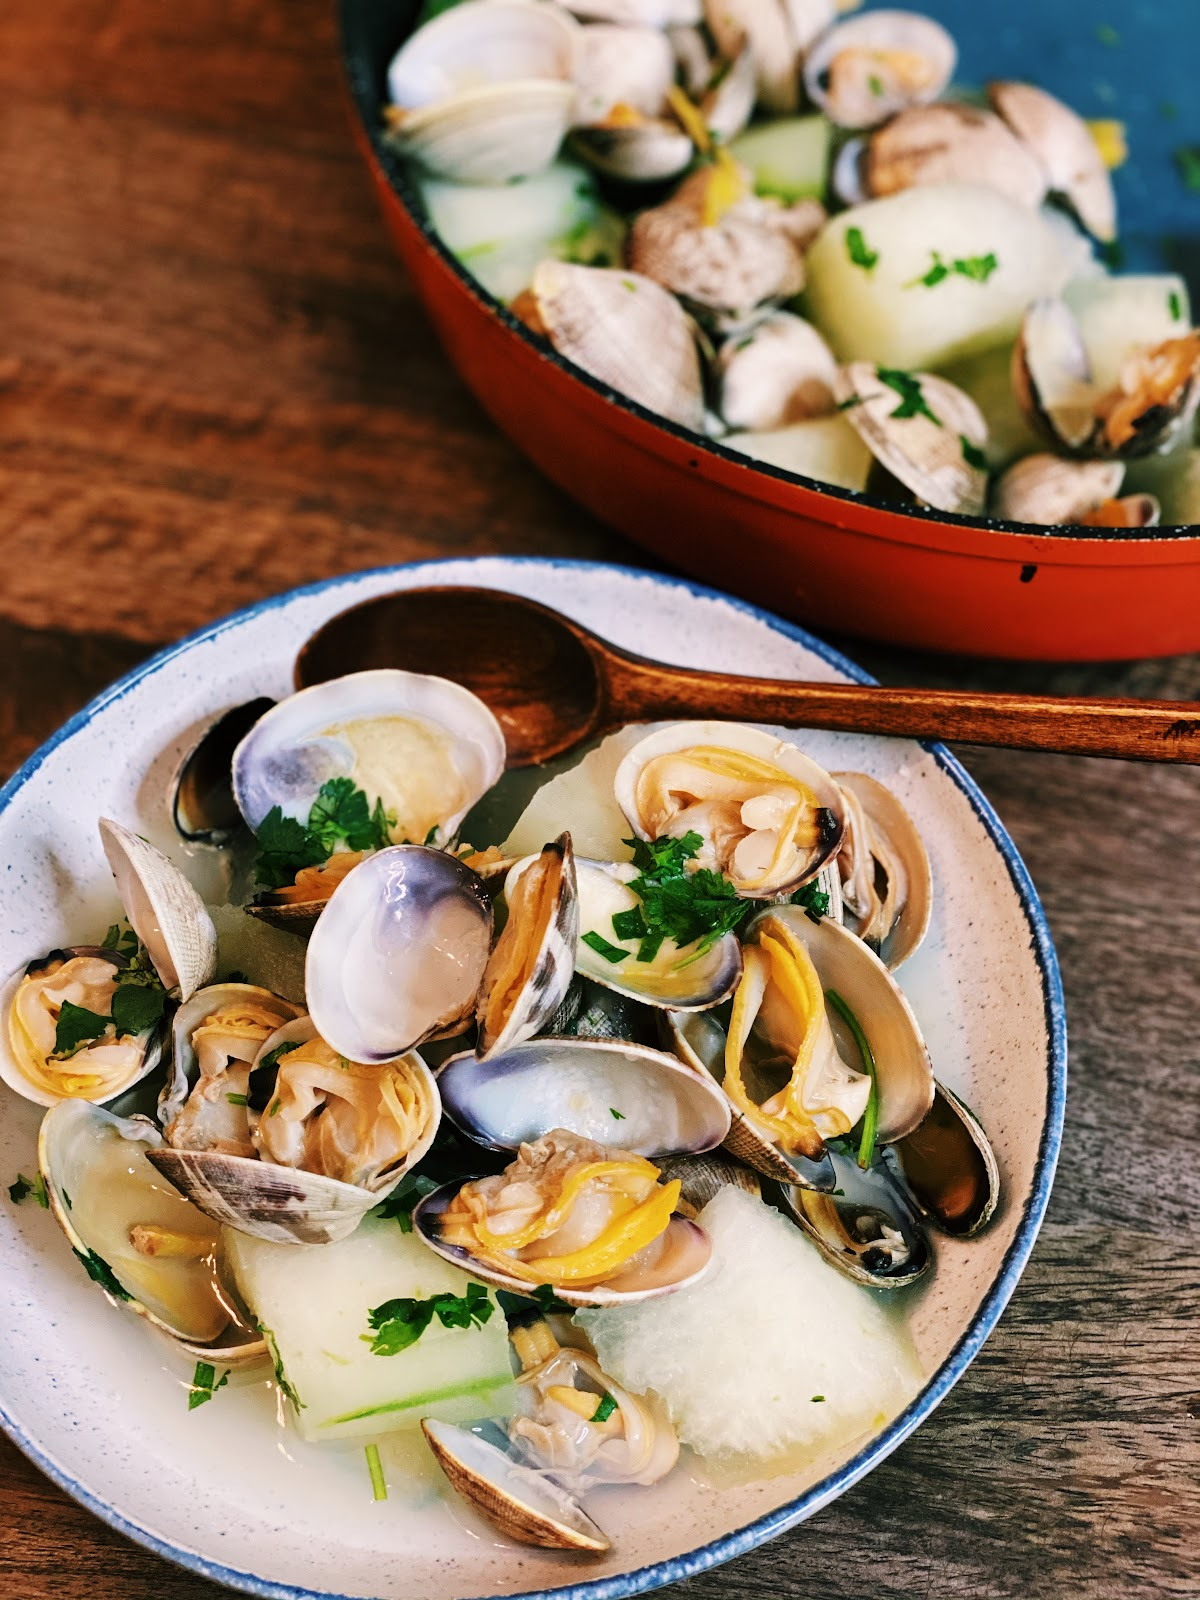 Steamed Clams and Winter Melon